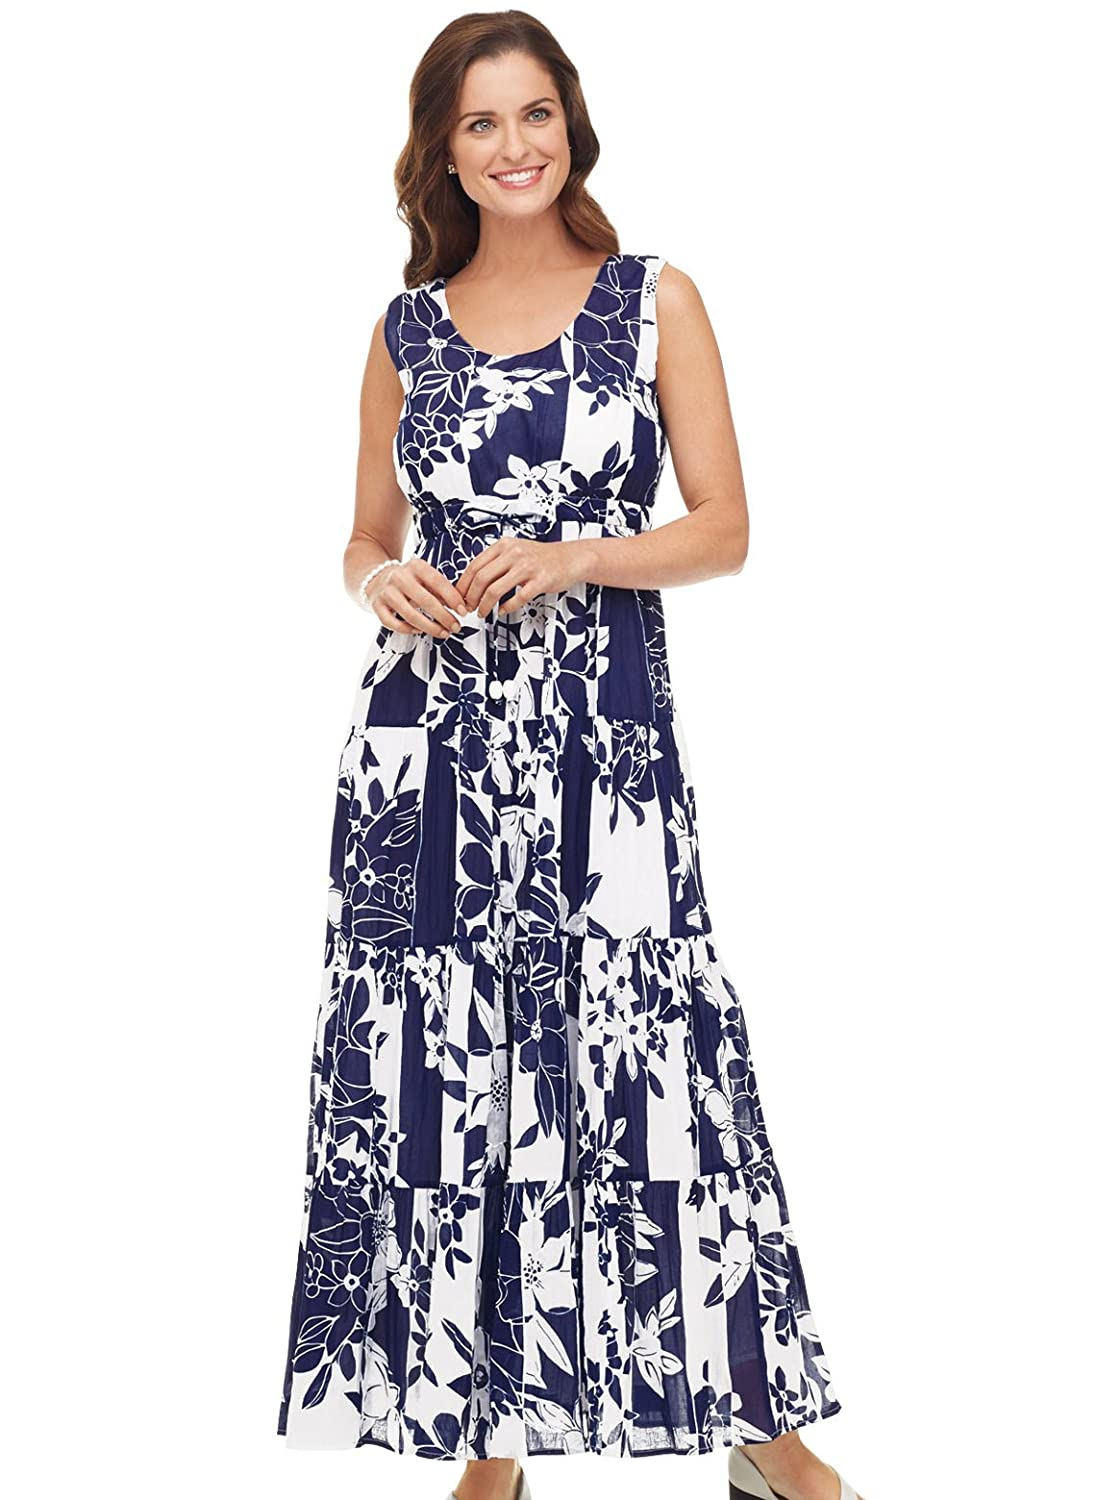 100% Cotton Maxi Dress at Amazon Women's Clothing store: